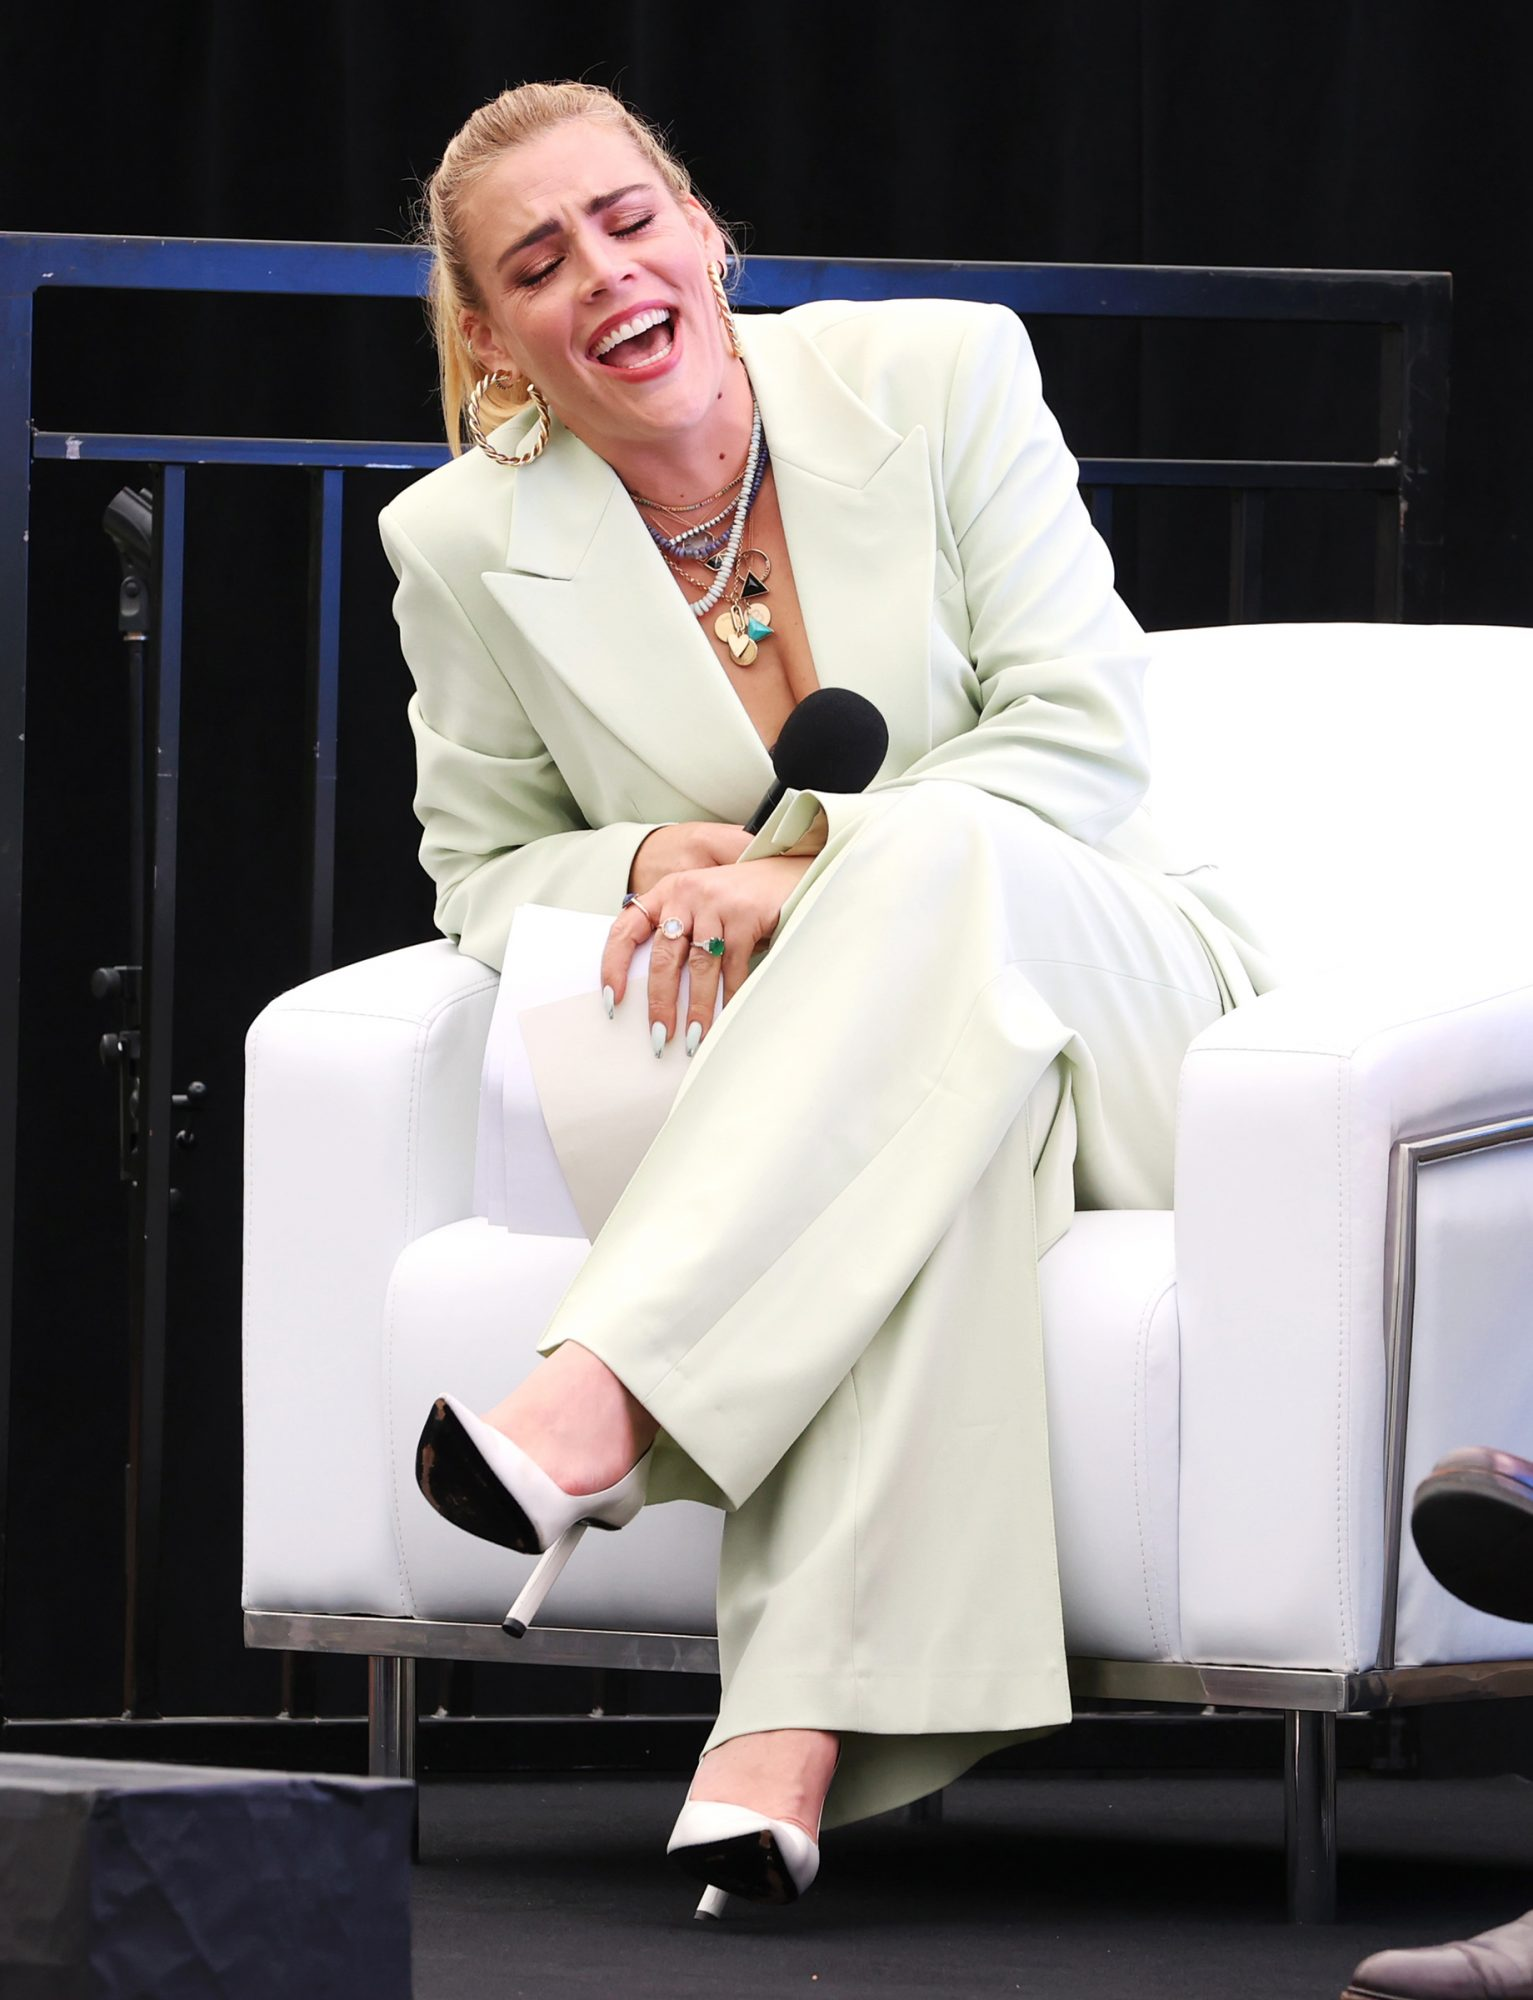 Busy Philipps speaks during the 2021 Tribeca Festival Tribeca Talks: Tina Fey & Co. at Spring Studios on June 11, 2021 in New York City